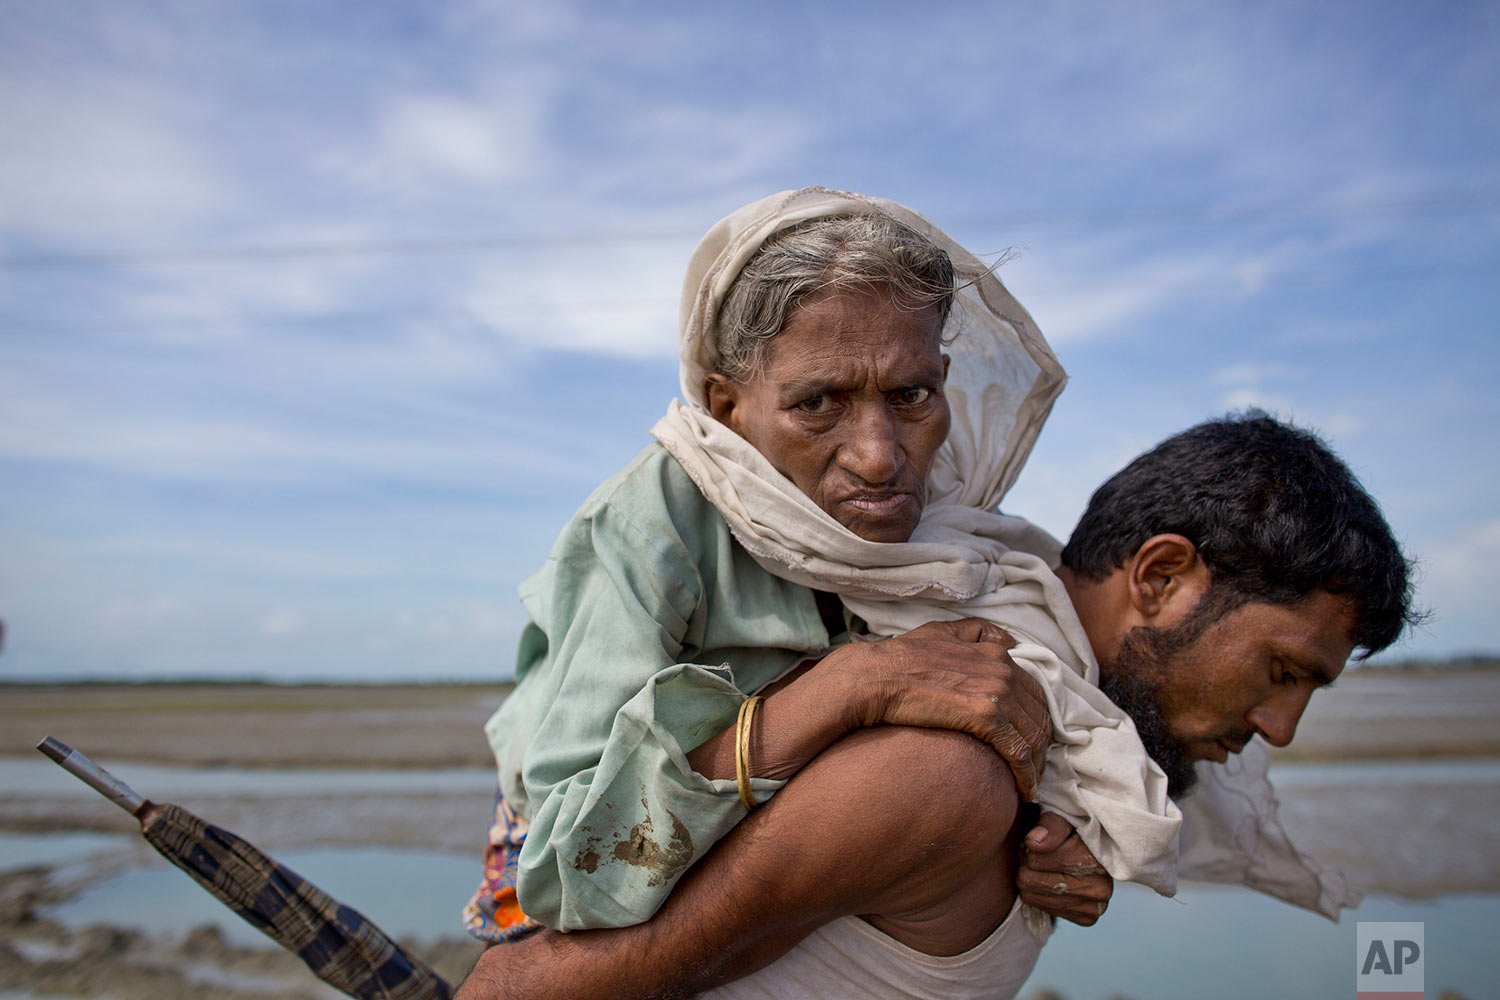 A Rohingya Muslim man carries an elderly woman and walks towards a camp for refugees after crossing over the border from Myanmar into Bangladesh in Teknaf, Bangladesh, Friday, Sept. 29, 2017. More than a month after Myanmar's refugees began spilling across the border, the U.N. says more than half a million have arrived. (AP Photo/Gemunu Amarasinghe)